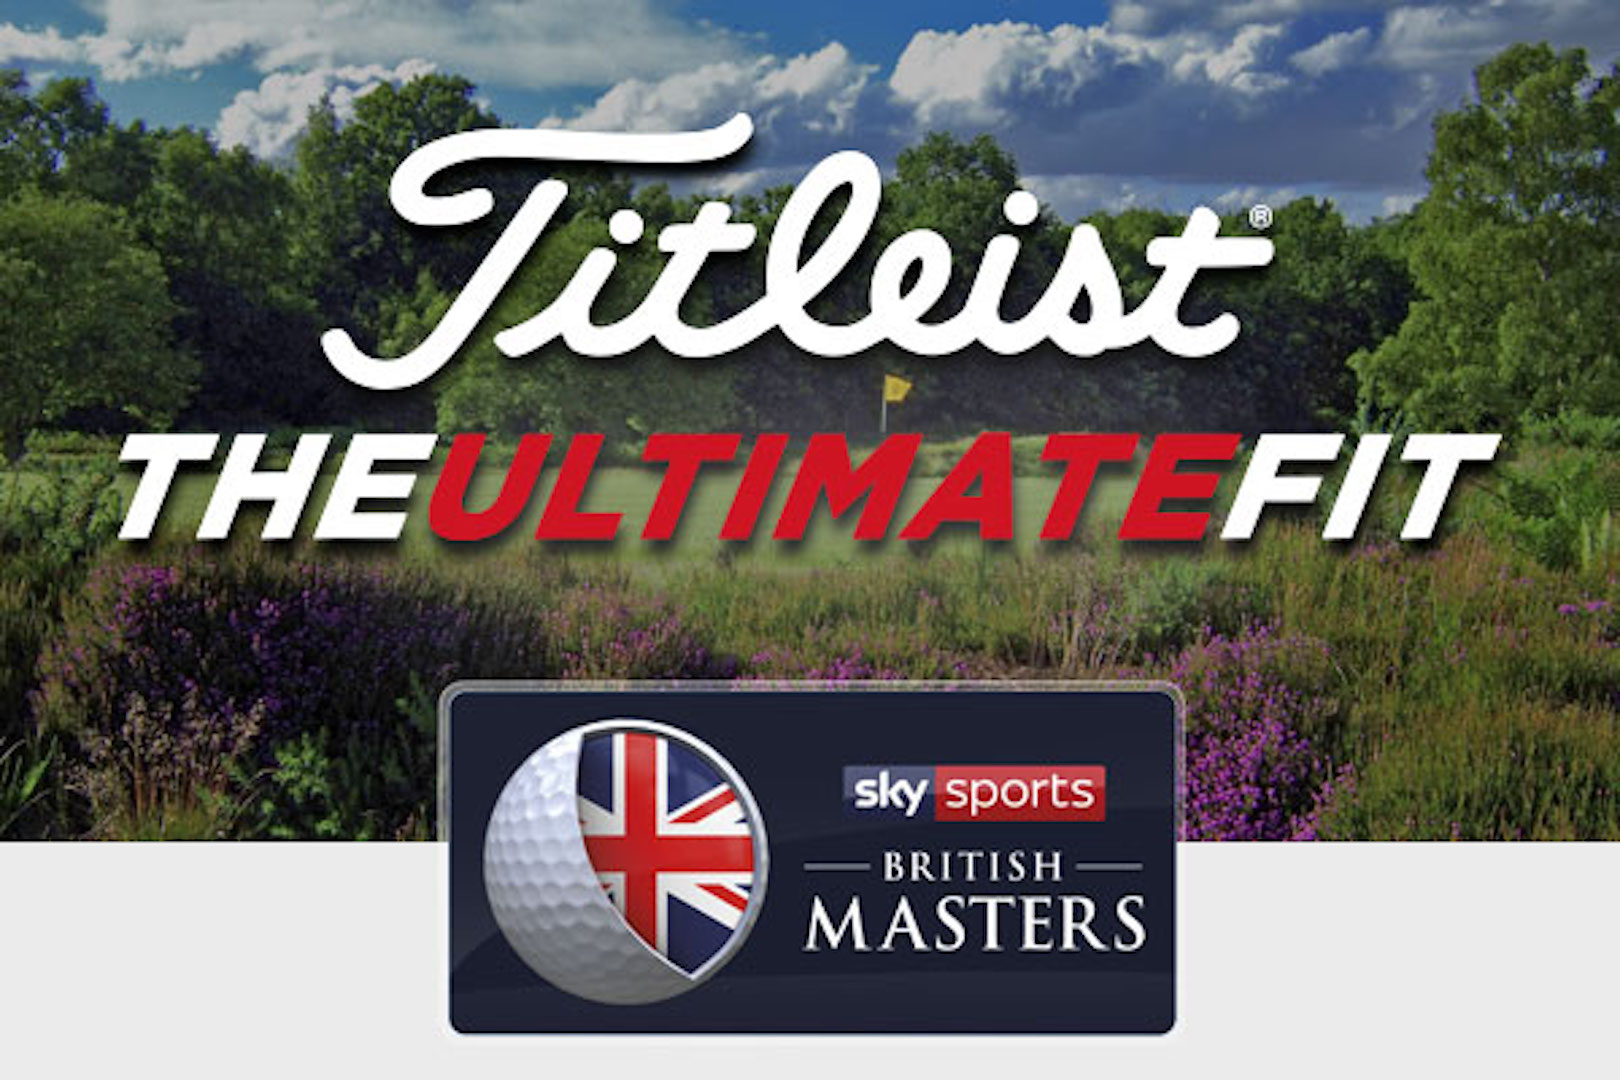 Titleist Ultimate Fit Experience returns